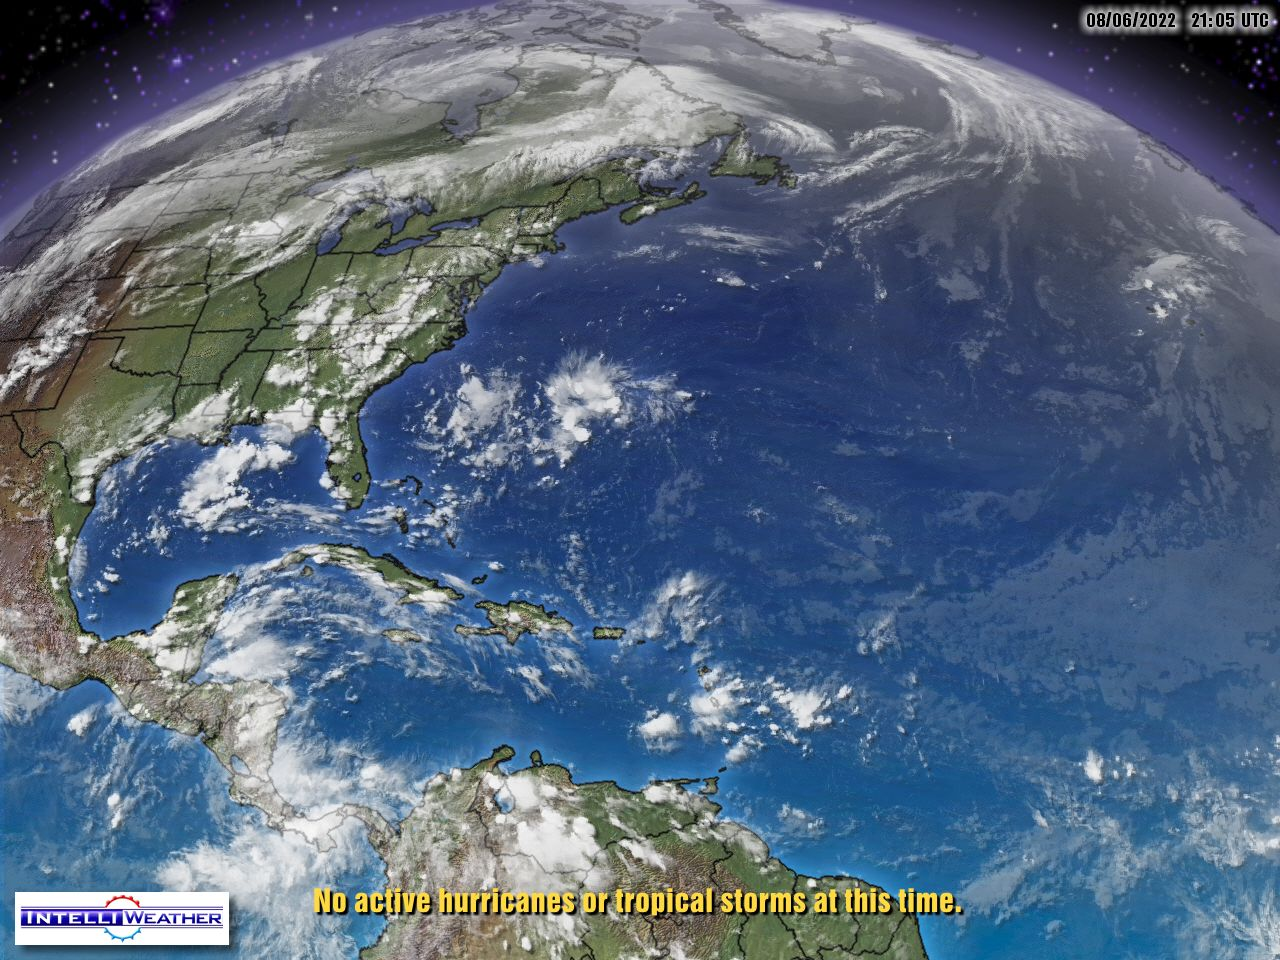 https://i0.wp.com/www.intelliweather.net/imagery/intelliweather/hurrtrack-sat_atlantic_halfdisk_1280x960.jpg